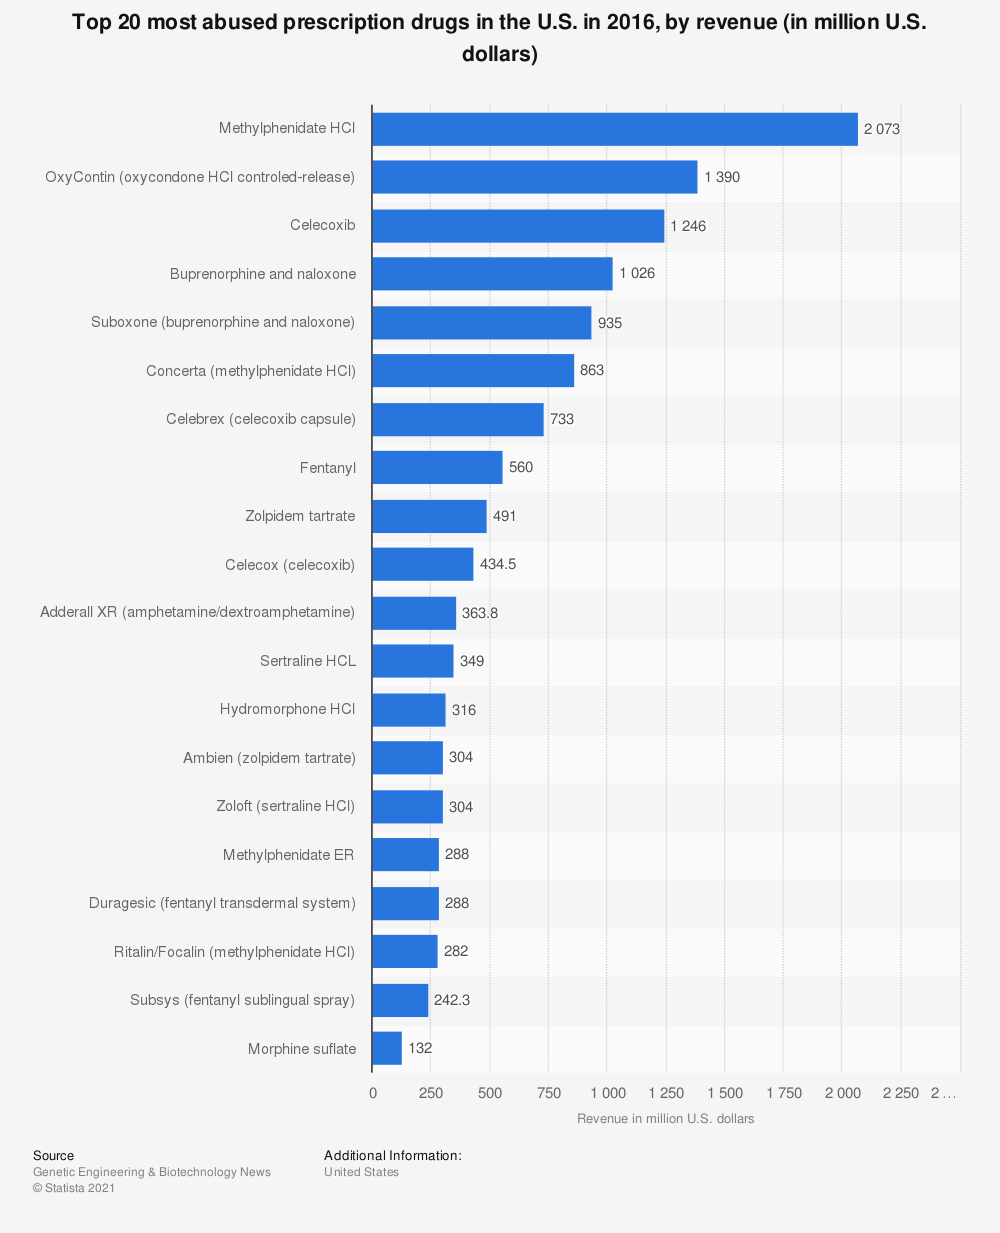 Statistic: Top 20 most abused prescription drugs in the U.S. in 2016, by revenue (in million U.S. dollars) | Statista